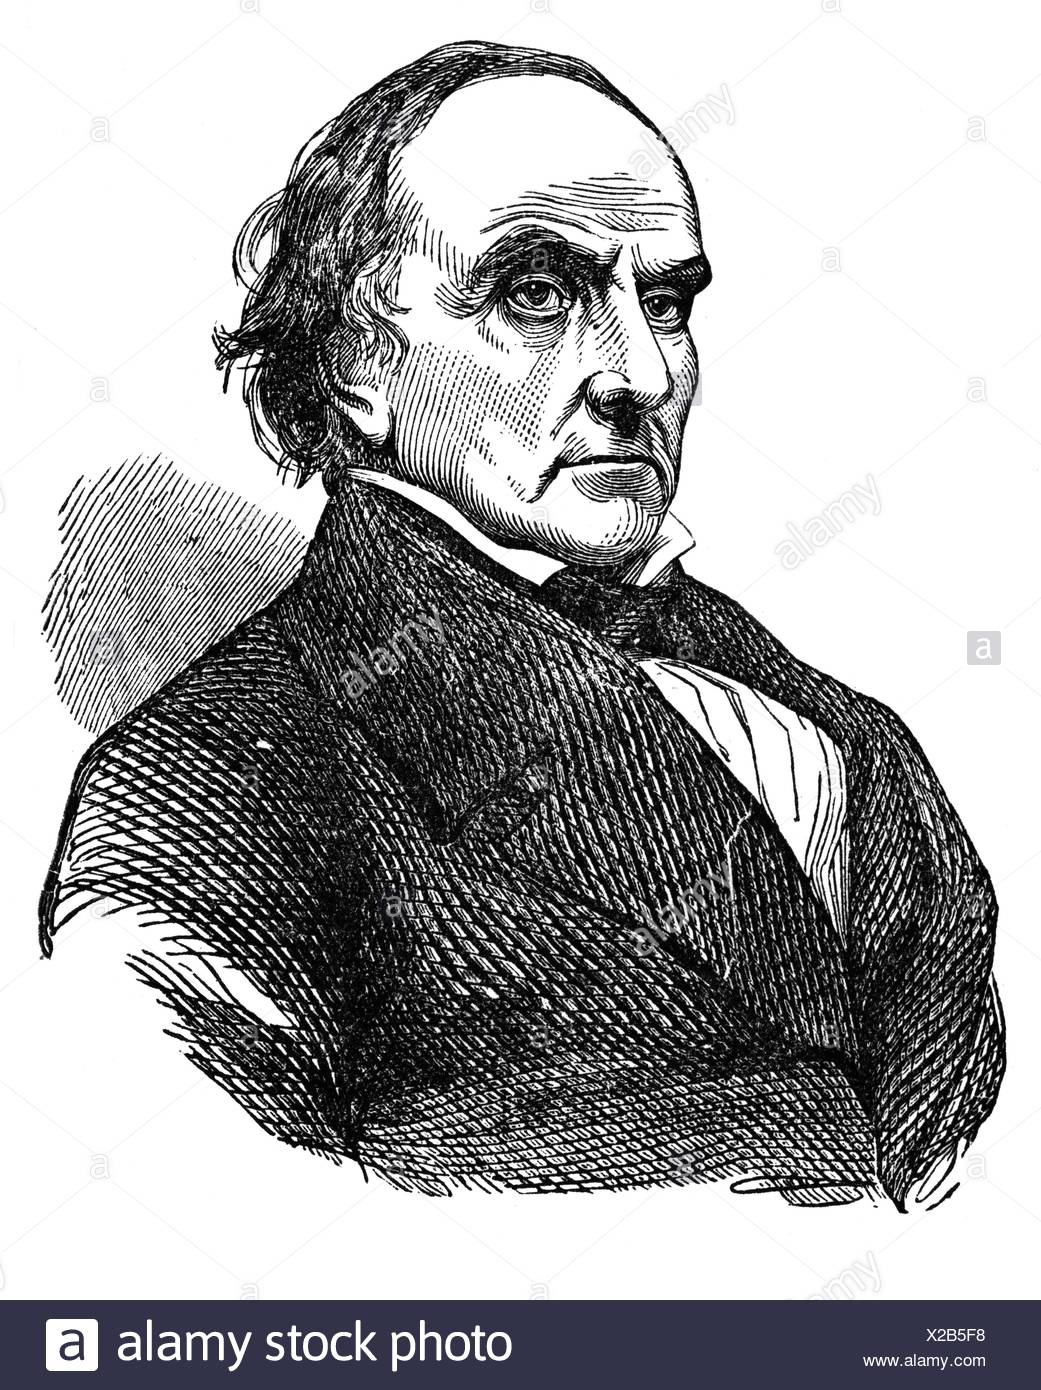 Webster, Daniel, 18.1.1782 - 24.10.1852, American politician, portrait, wood engraving,  19th century, Additional-Rights-Clearances-NA - Stock Image